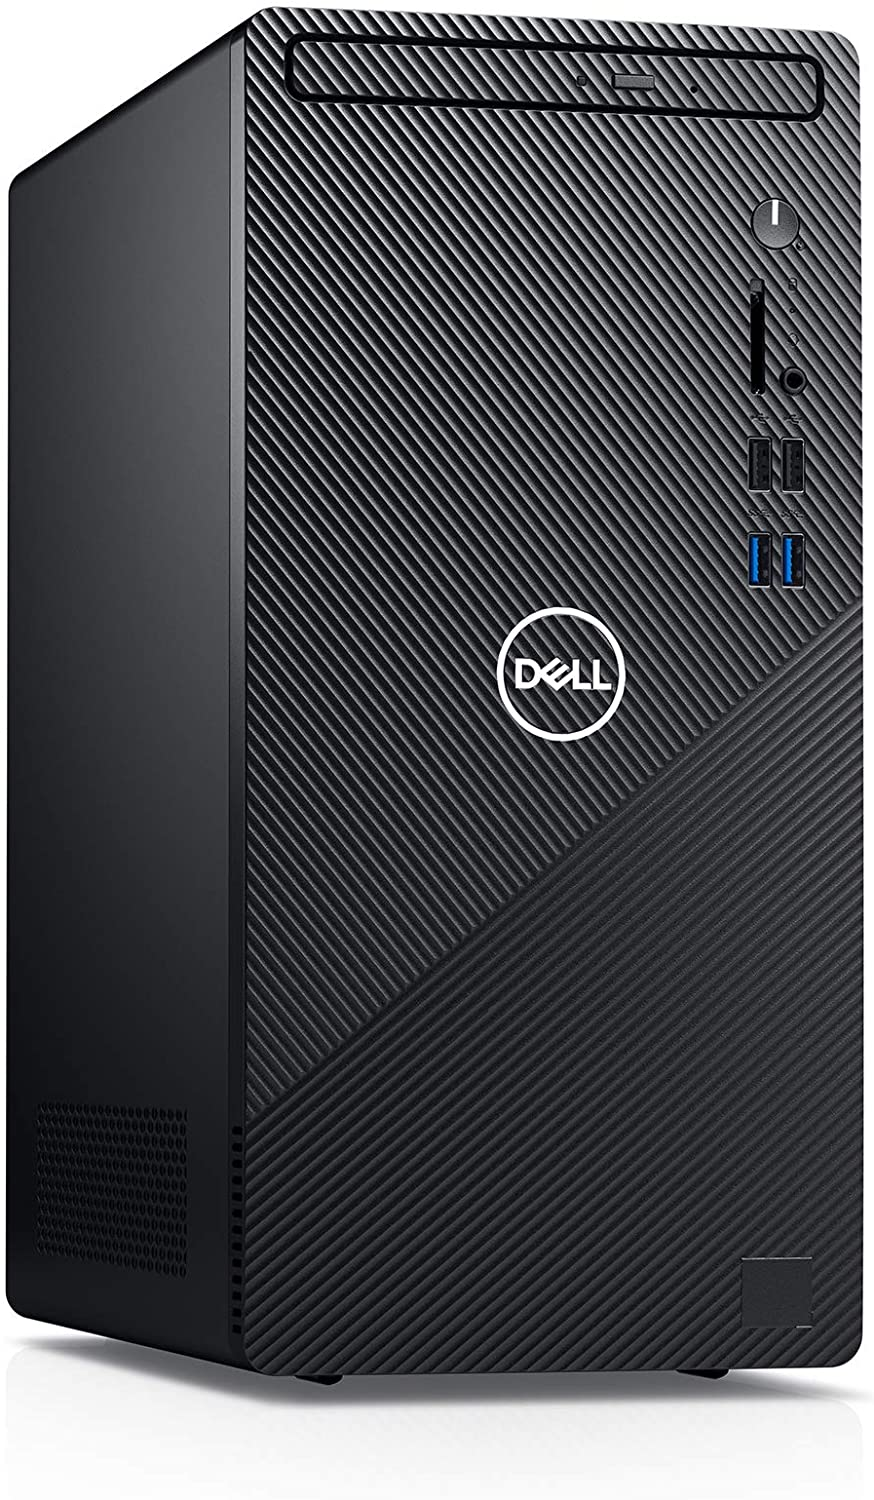 Dell Inspiron Desktop (Intel Core i7 10th Gen, 8GB Memory, 512GB SSD Storage, Windows 10 Home) Includes Keyboard and Mouse